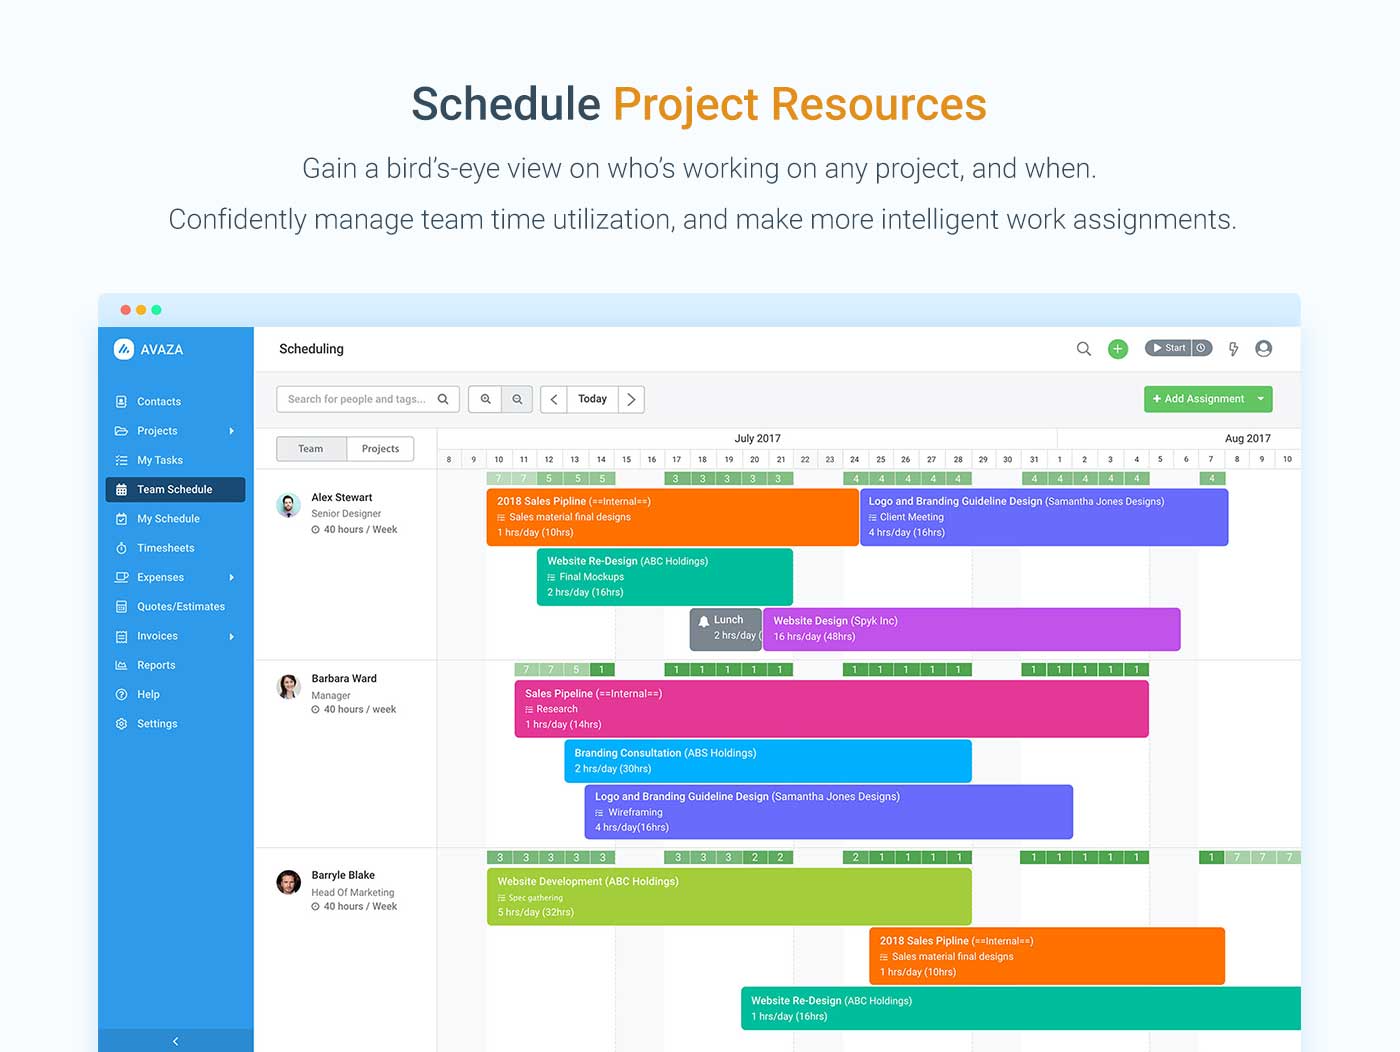 Access resource scheduling, and schedule projects based on team availability.